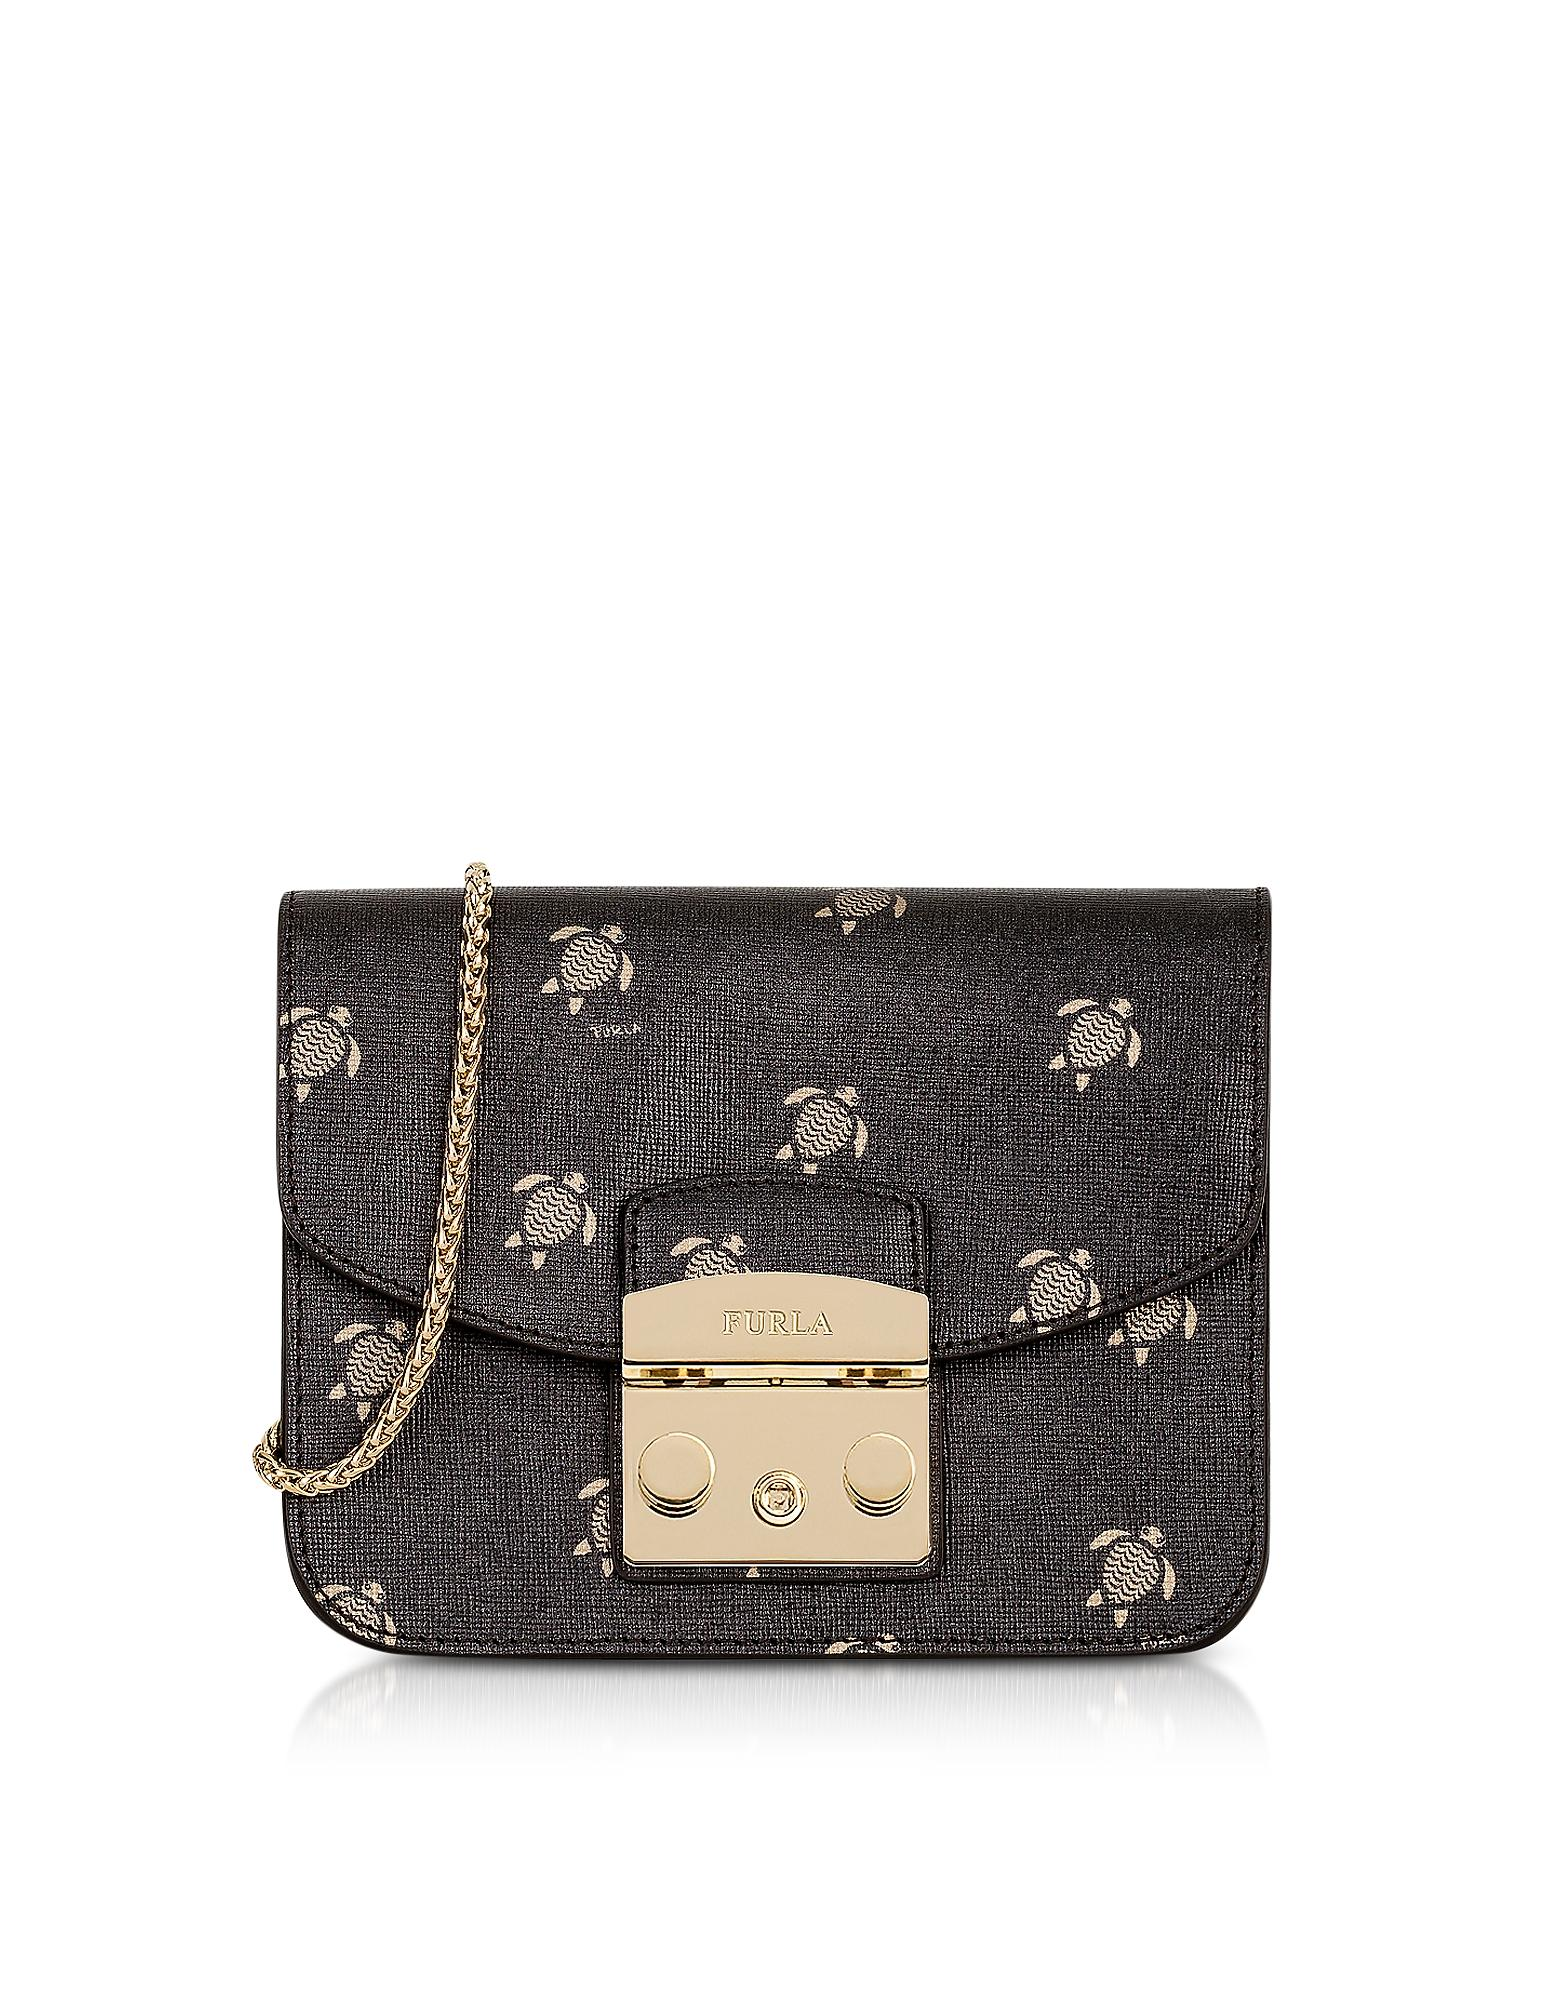 c03bff05f42f Furla Toni Onyx Mini Turtle Printed Saffiano Leather Metropolis Mini  Crossbody Bag In Black